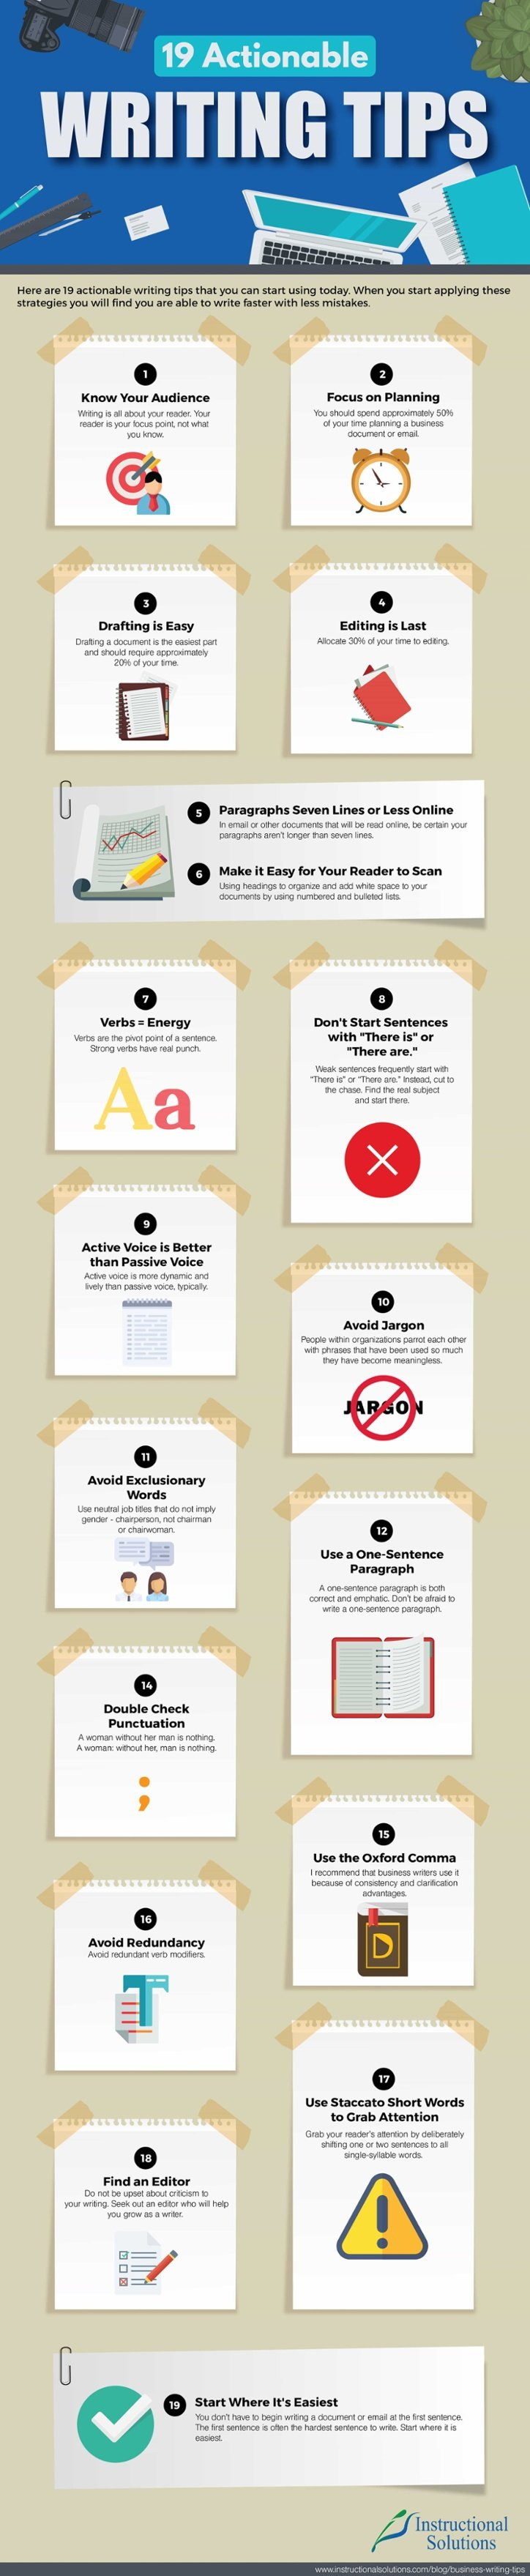 19 Actionable Writing Tips